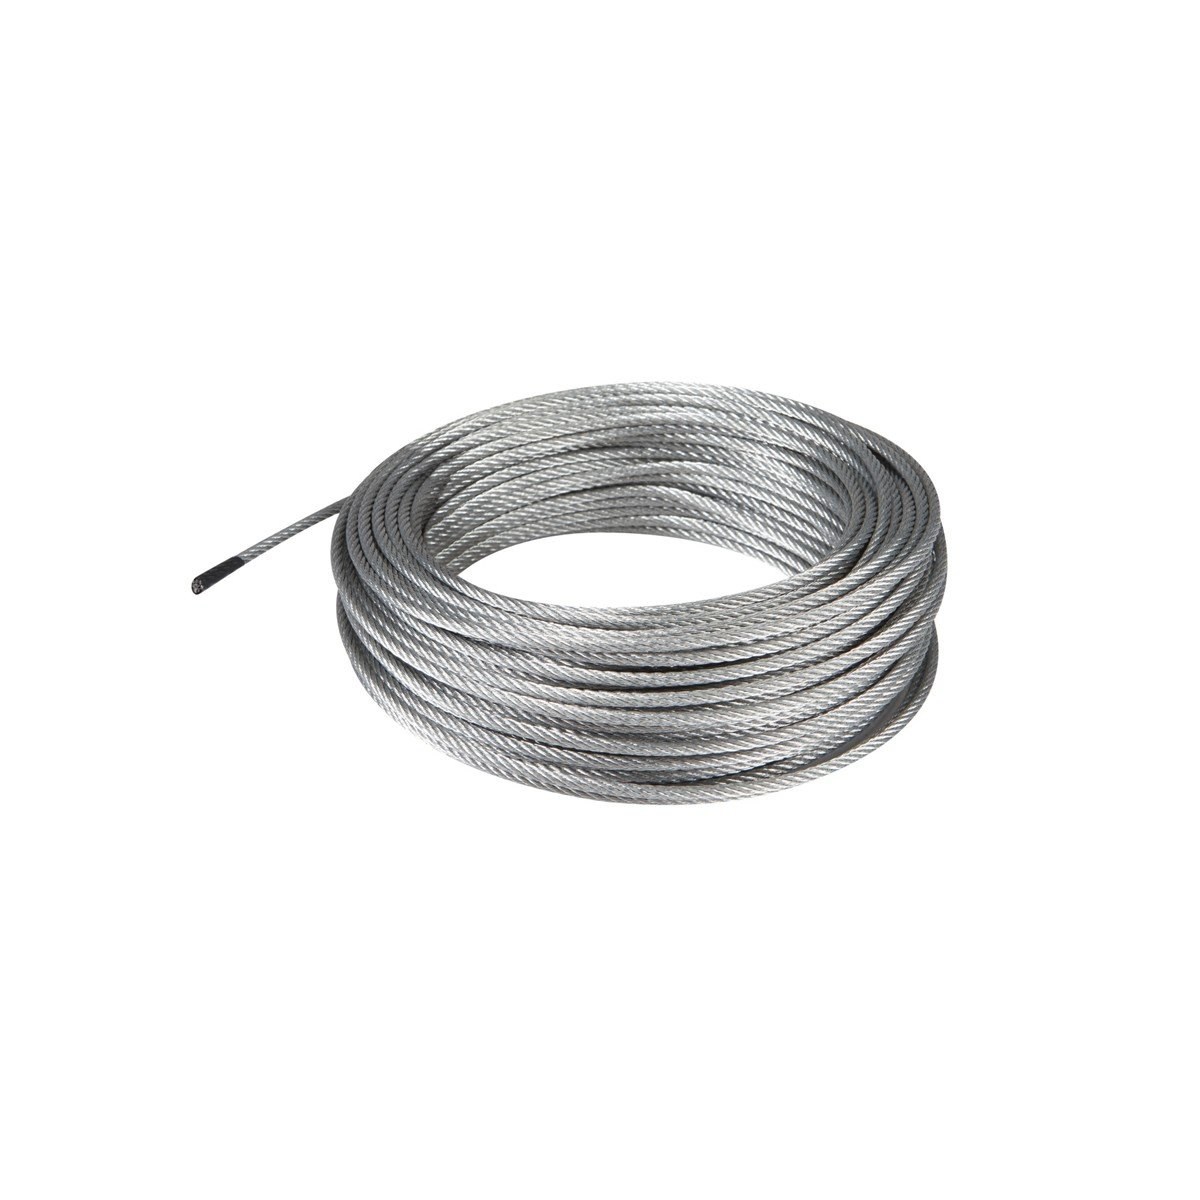 Amazon.com: 100 Ft. X 3mm Aircraft Grade Wire Rope: Home Improvement